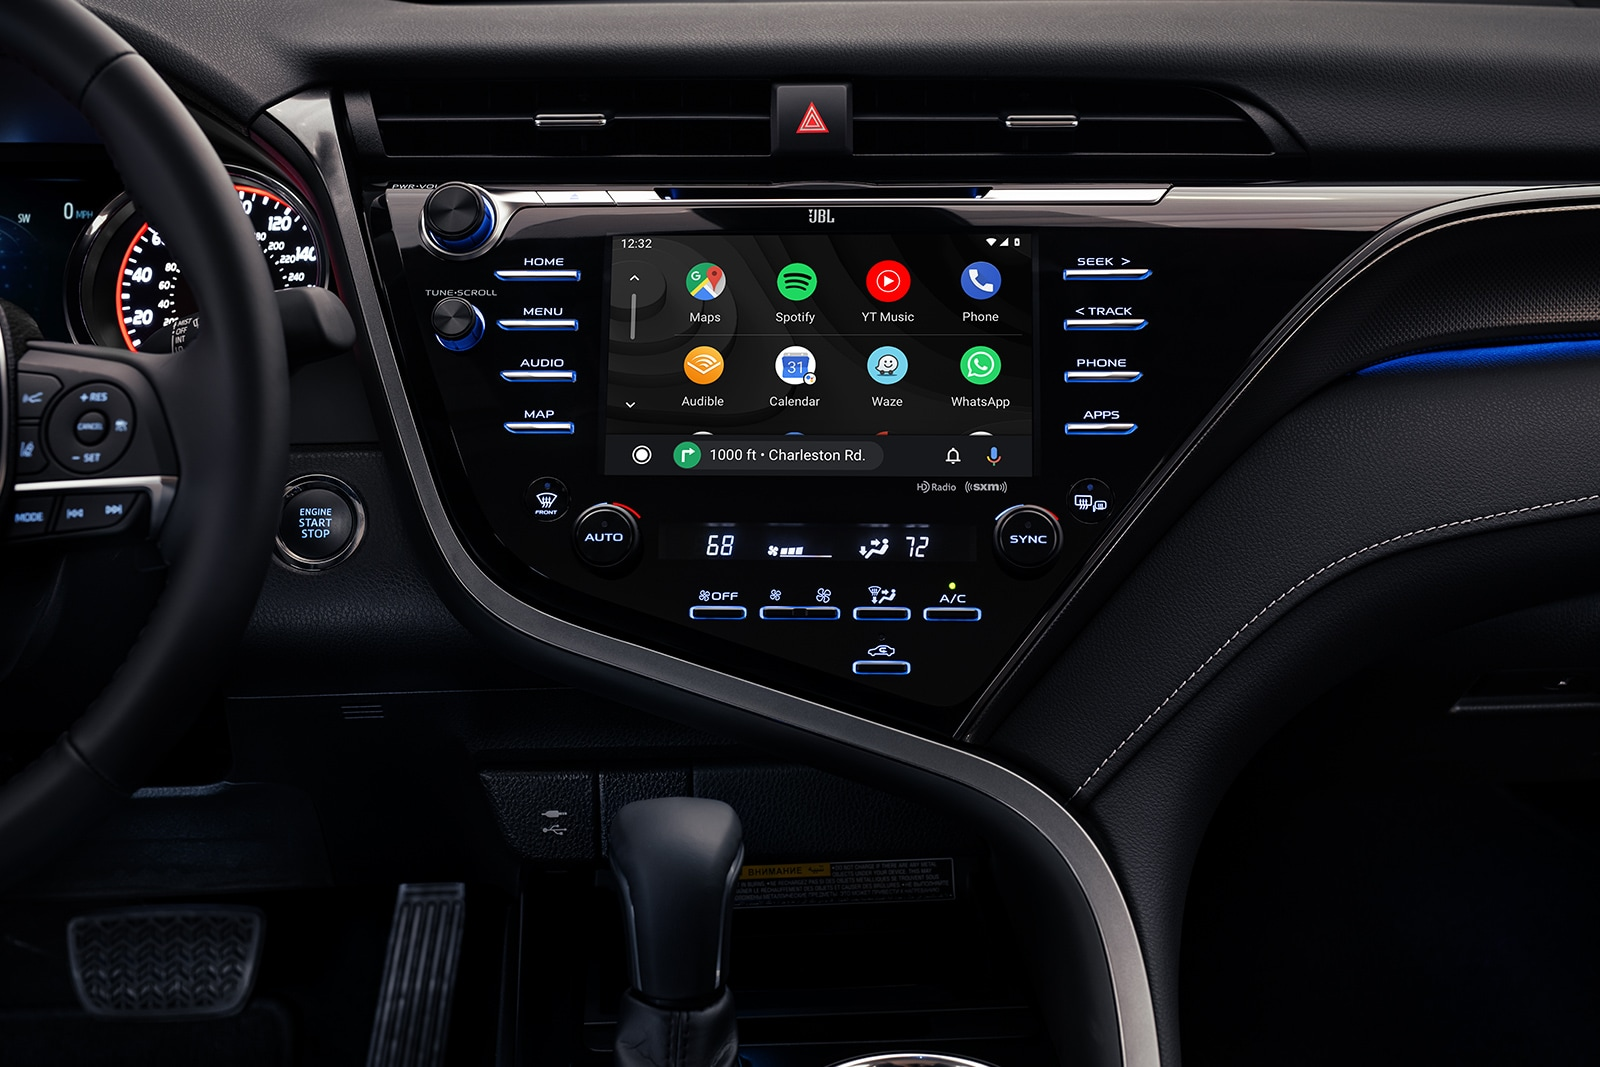 Model Features of the 2020 Toyota Camry at Johnstons Toyota of New Hampton | The technology of the 2020 camry